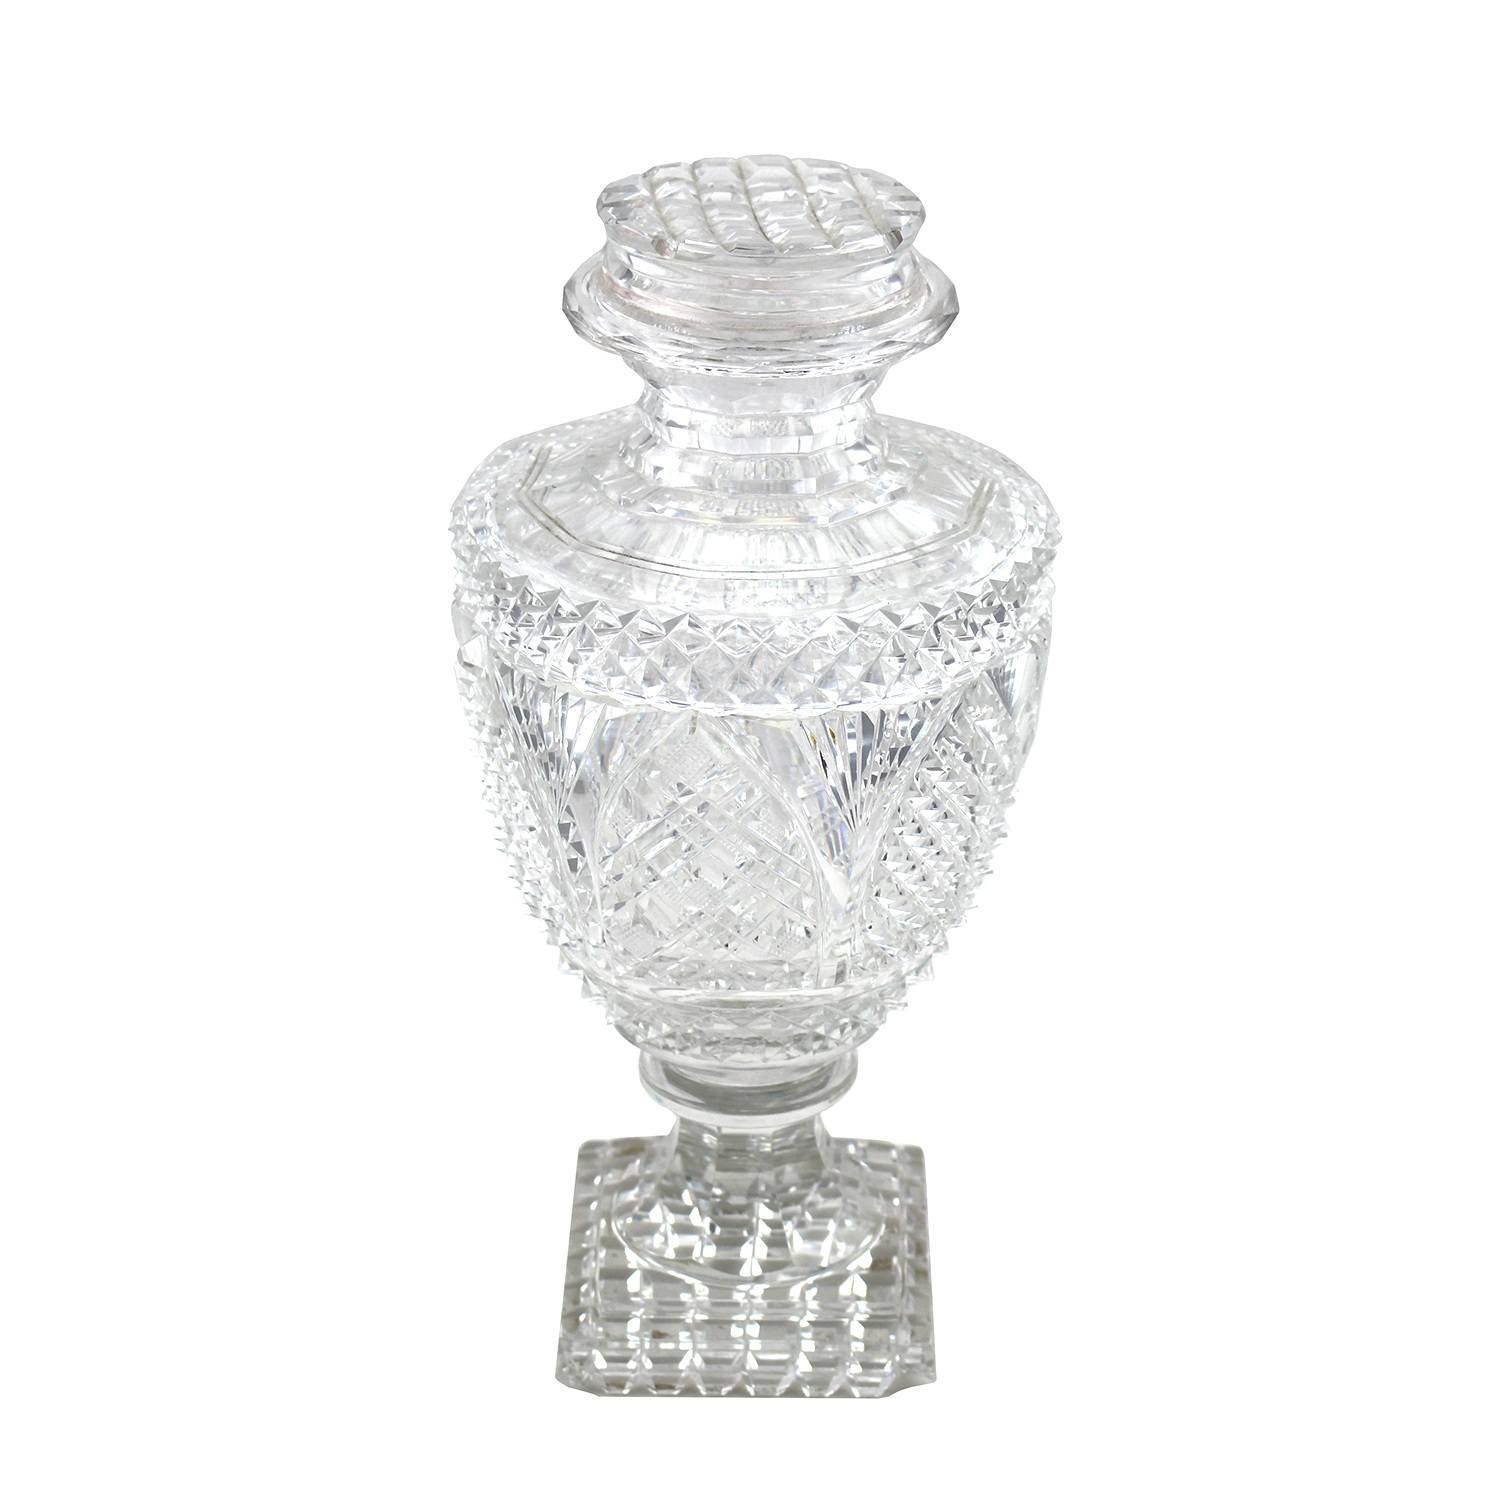 Scottish Lidded Glass Comport, 19th Century